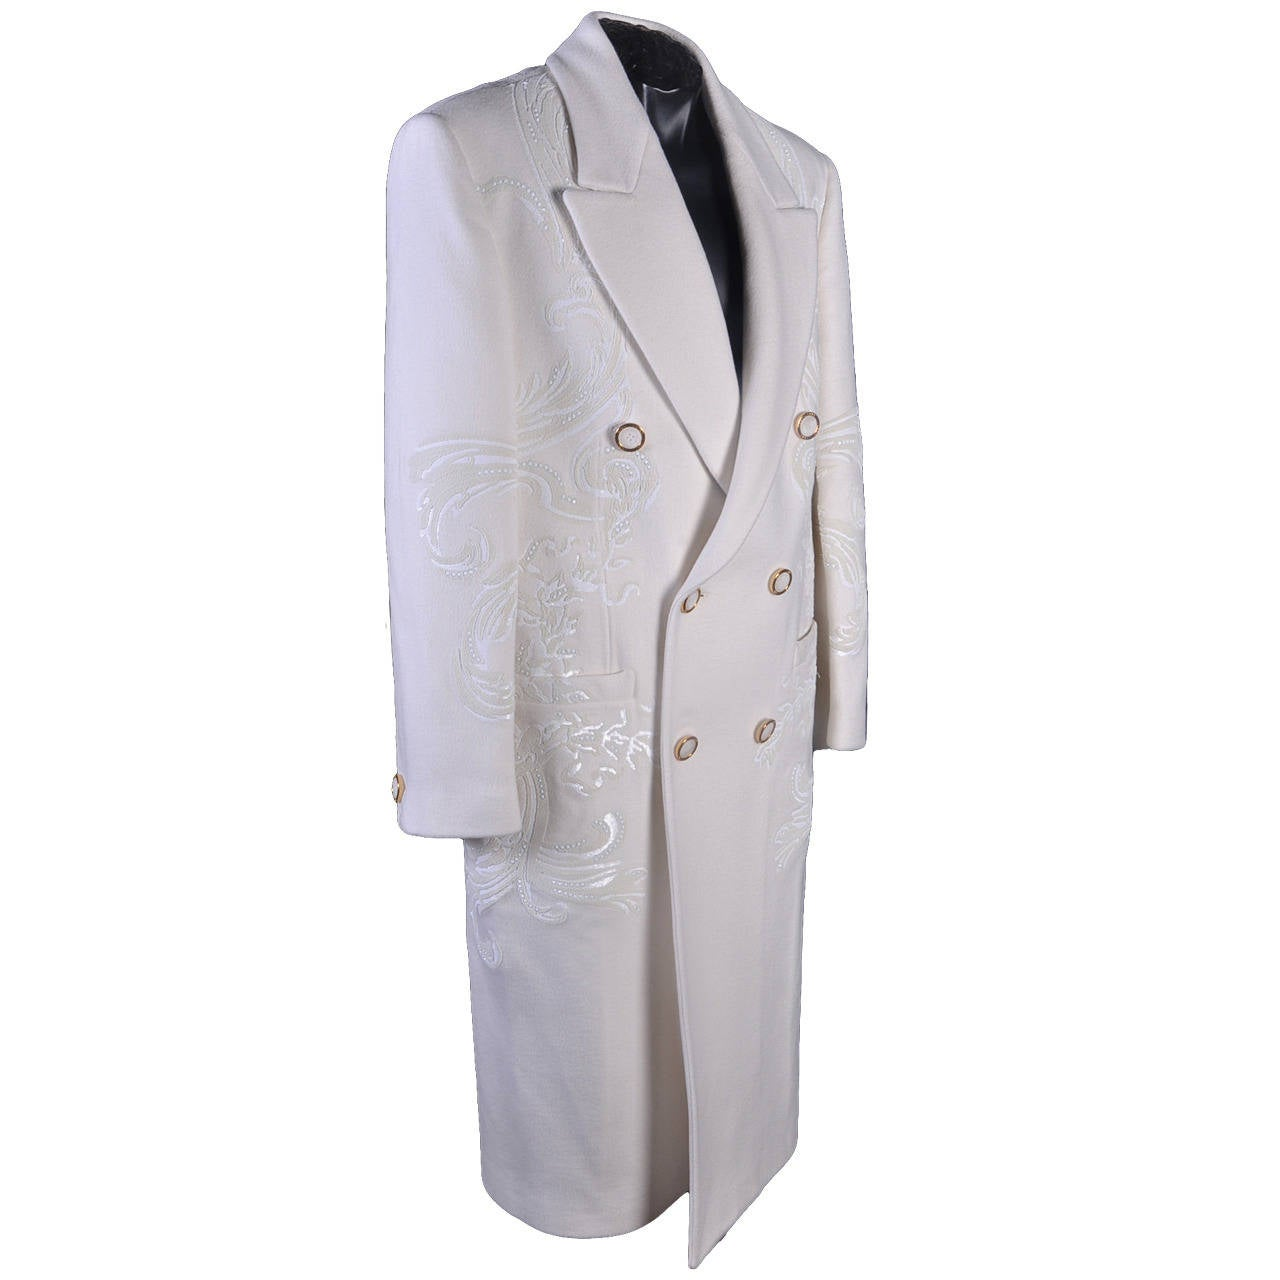 New VERSACE WHITE 100% CASHMERE EMBELLISHED MEN's COAT For Sale